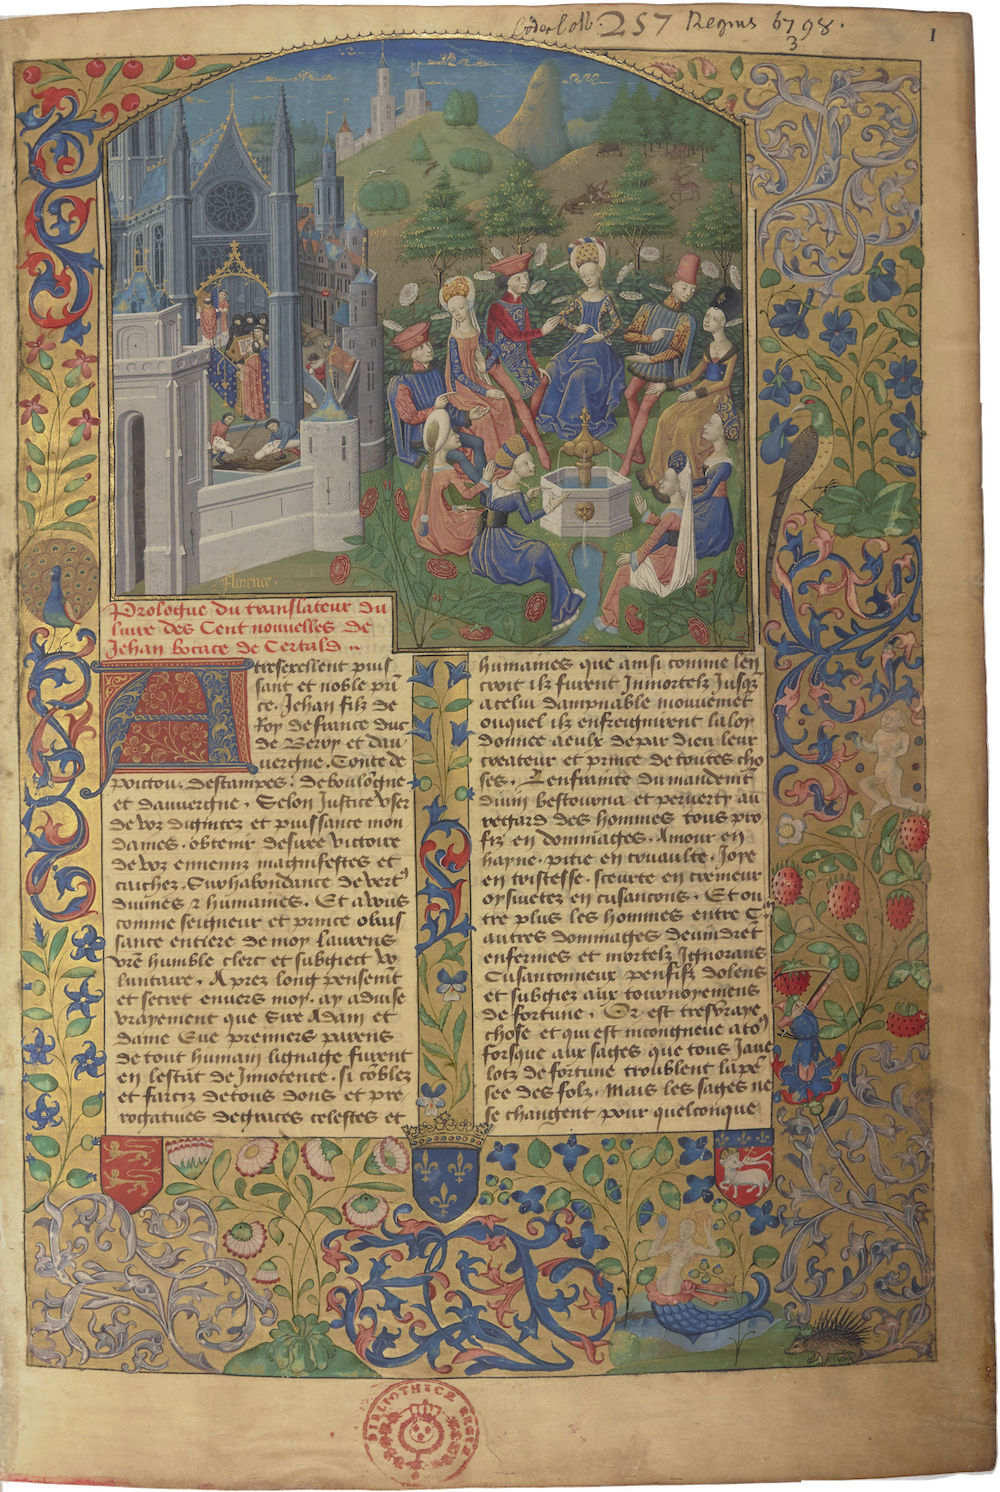 A highly decorated manuscript page from a copy of the Decameron. An illustration shows the ten friends gathered together outside around a small fountain.